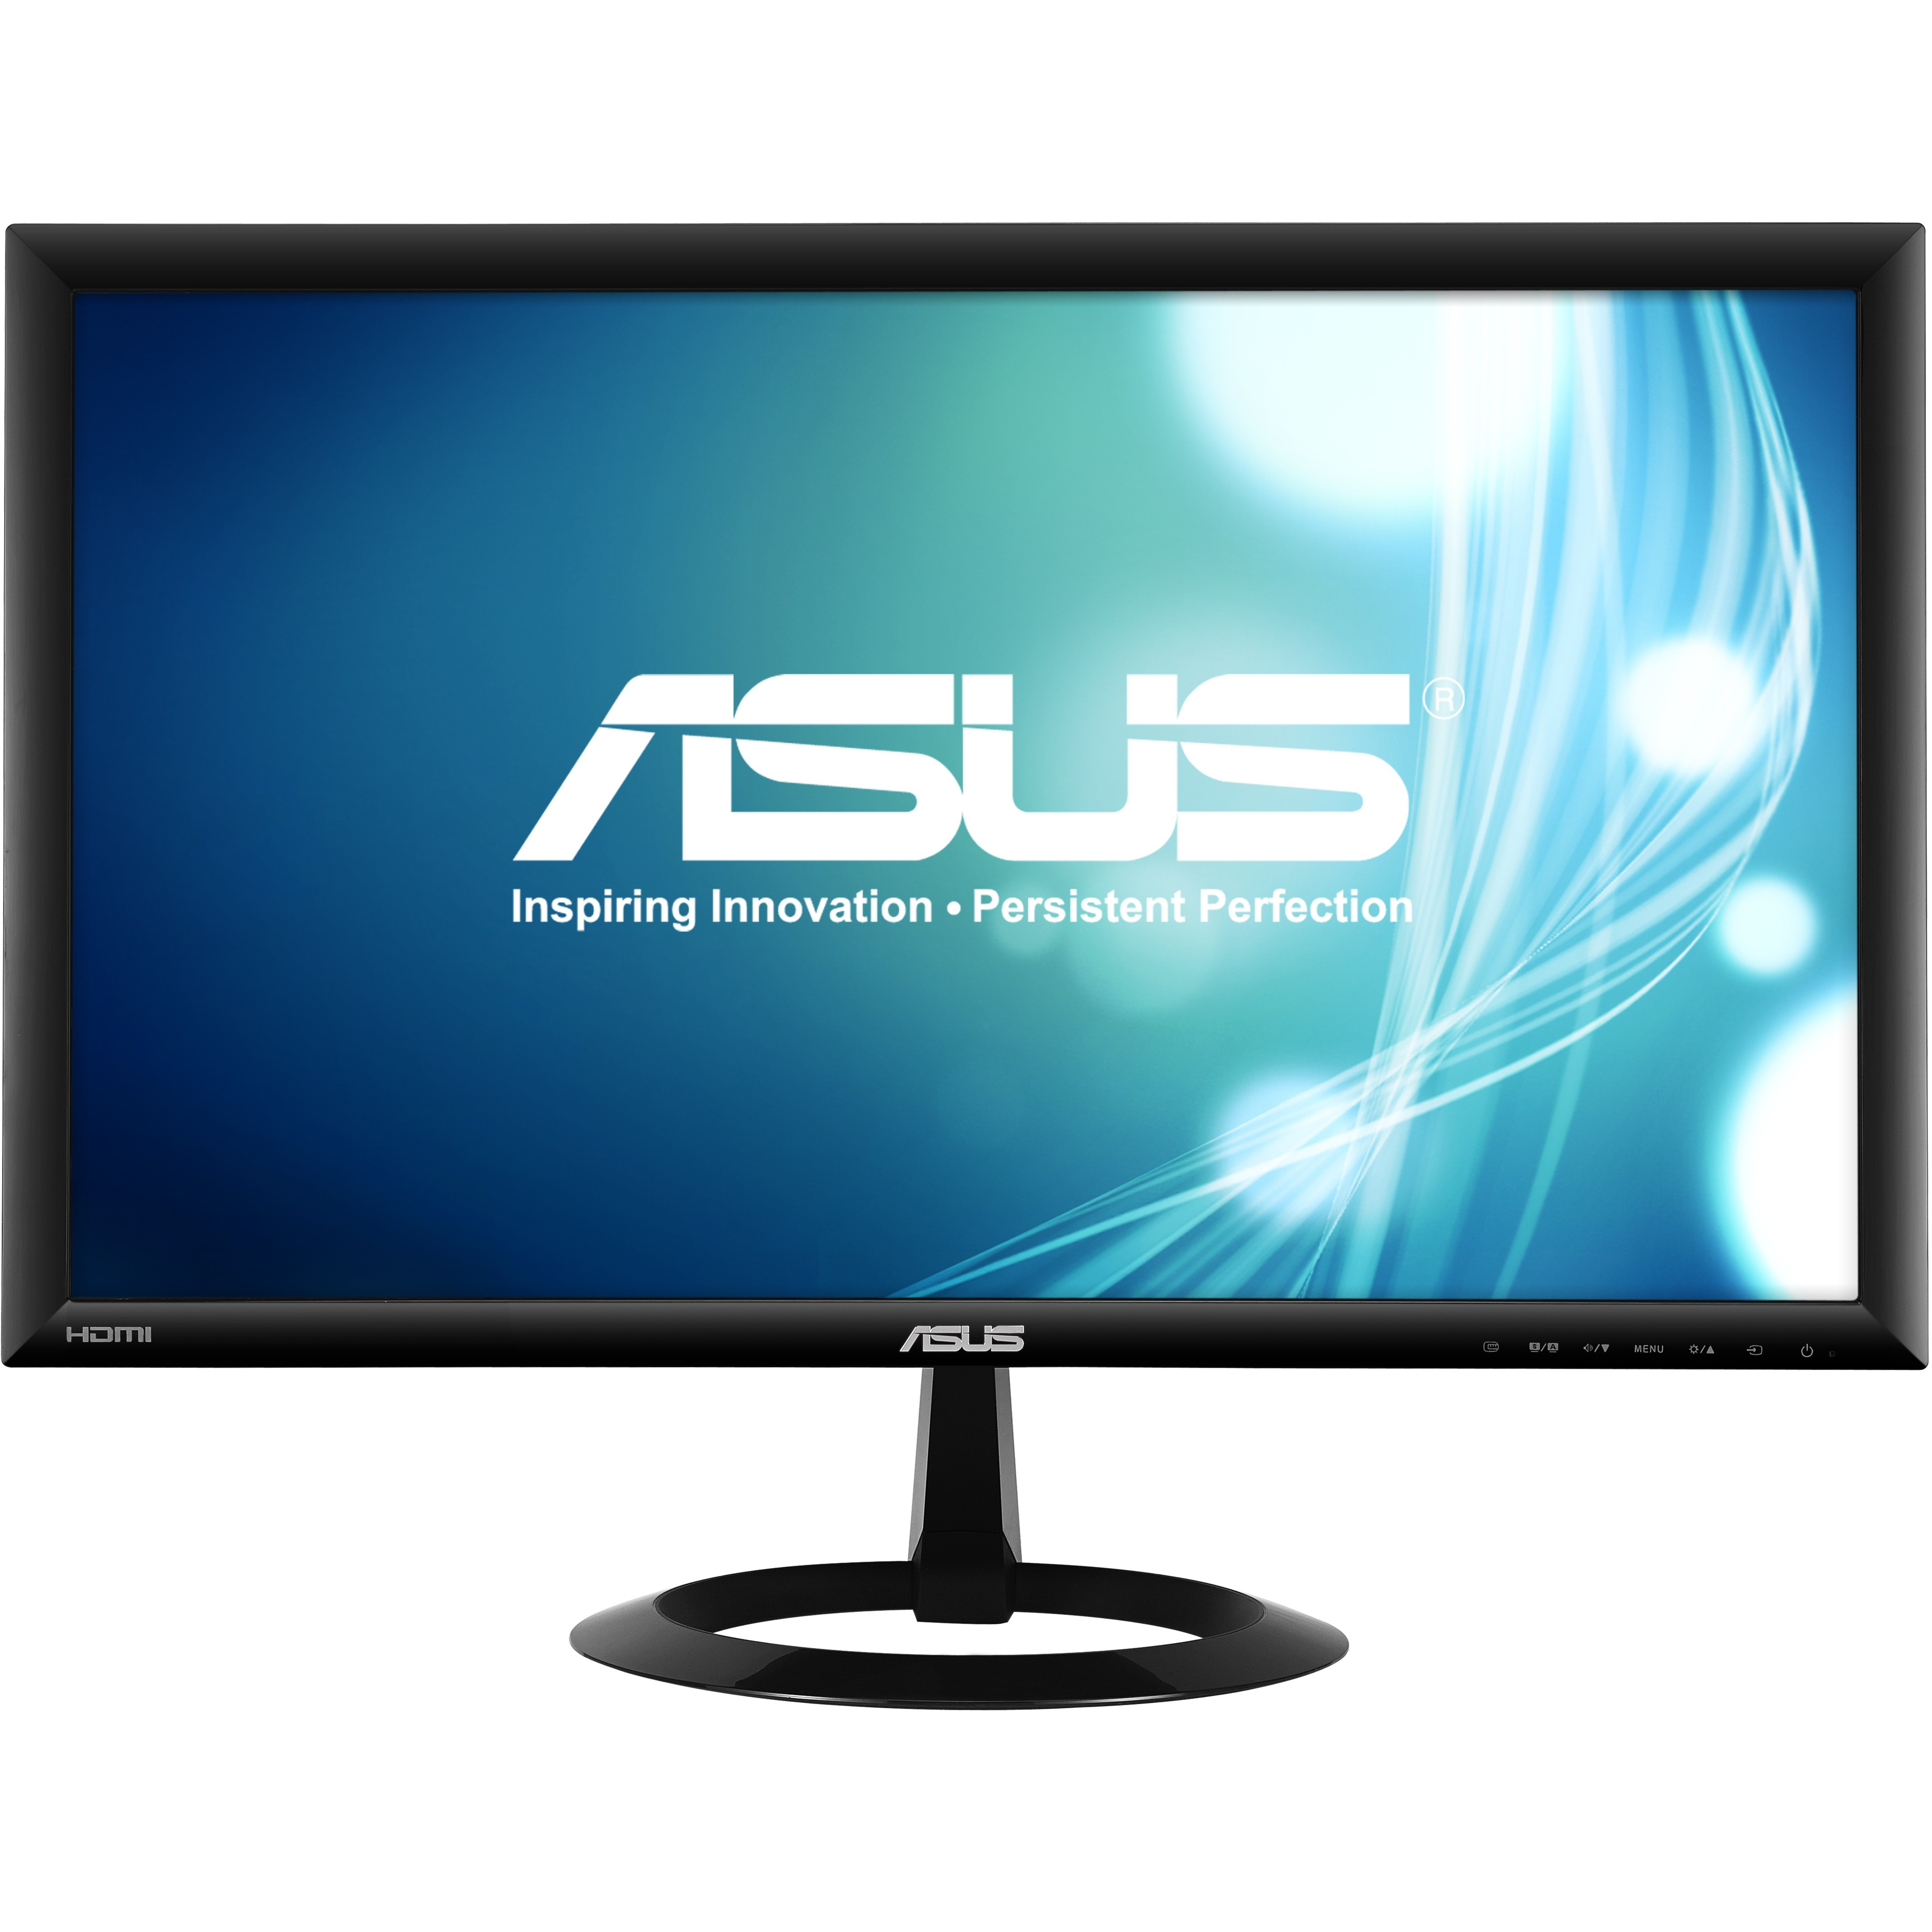 Asus VX228H 21.5inch LED LCD Monitor - 16:9 - 1 ms